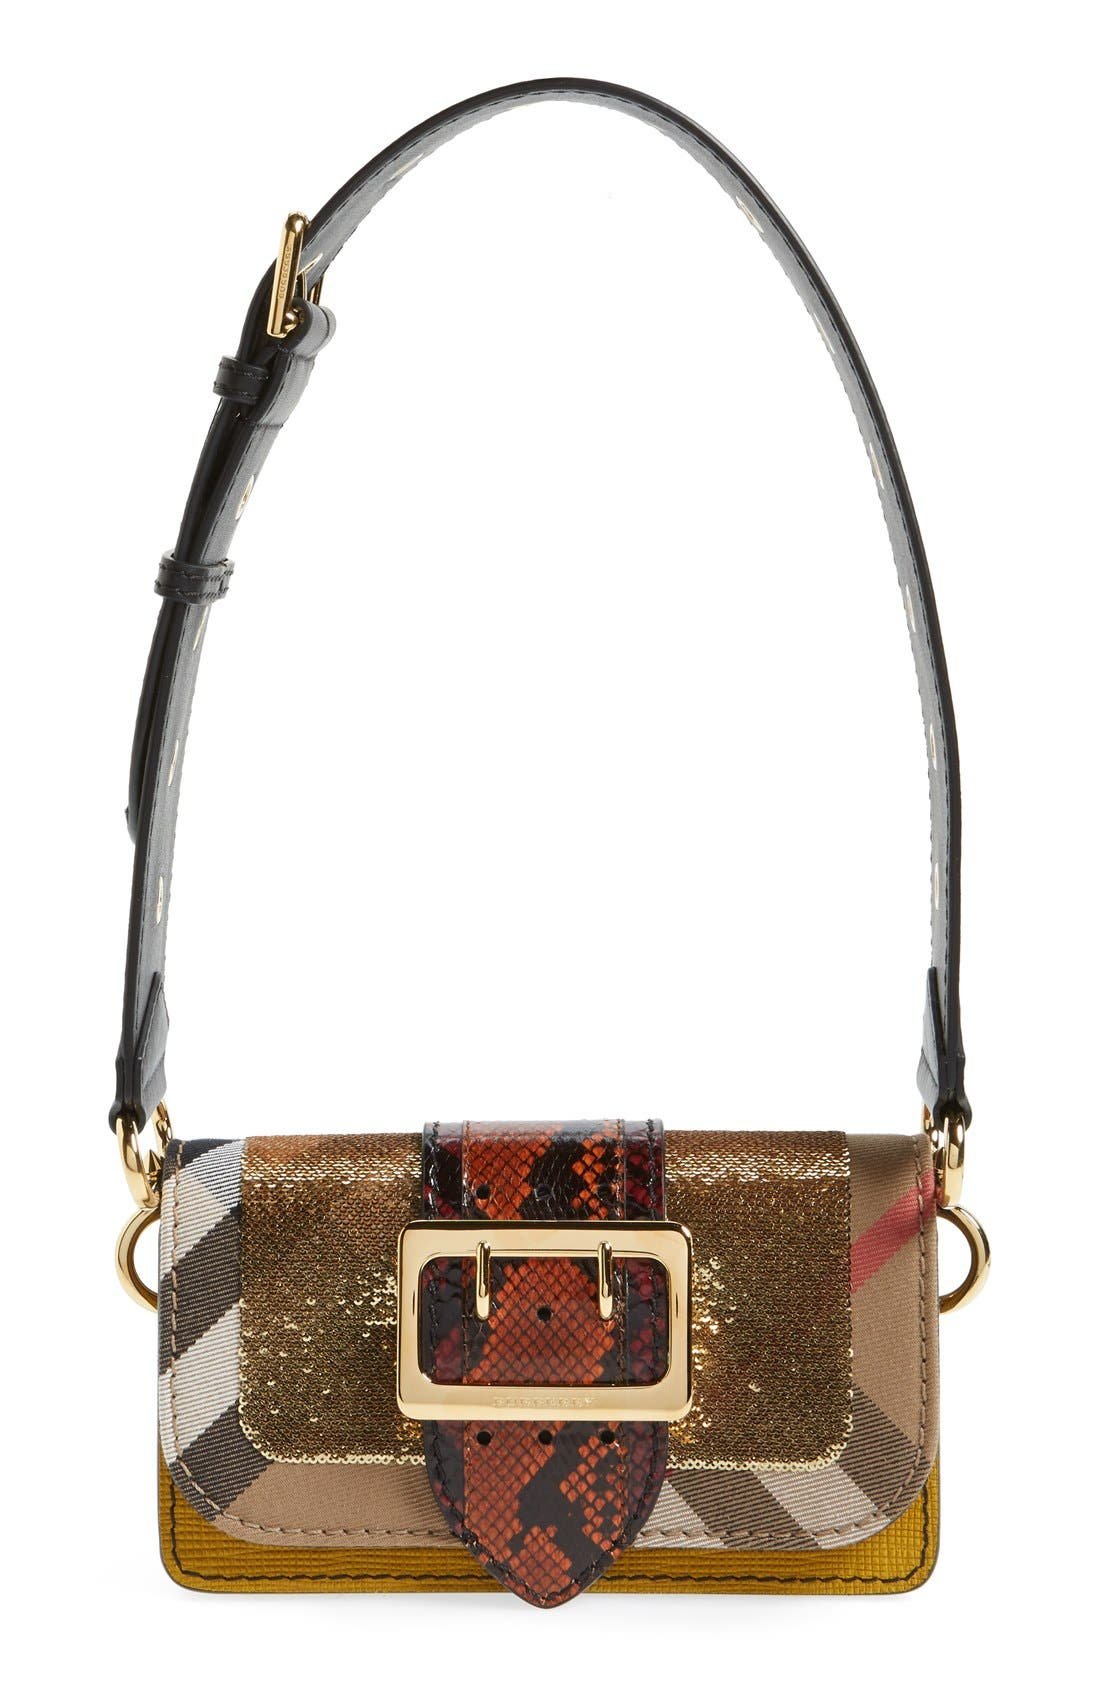 Alternate Image 1 Selected - Burberry 'Belt Bag' Mixed Finish Convertible Clutch with Genuine Snakeskin Trim